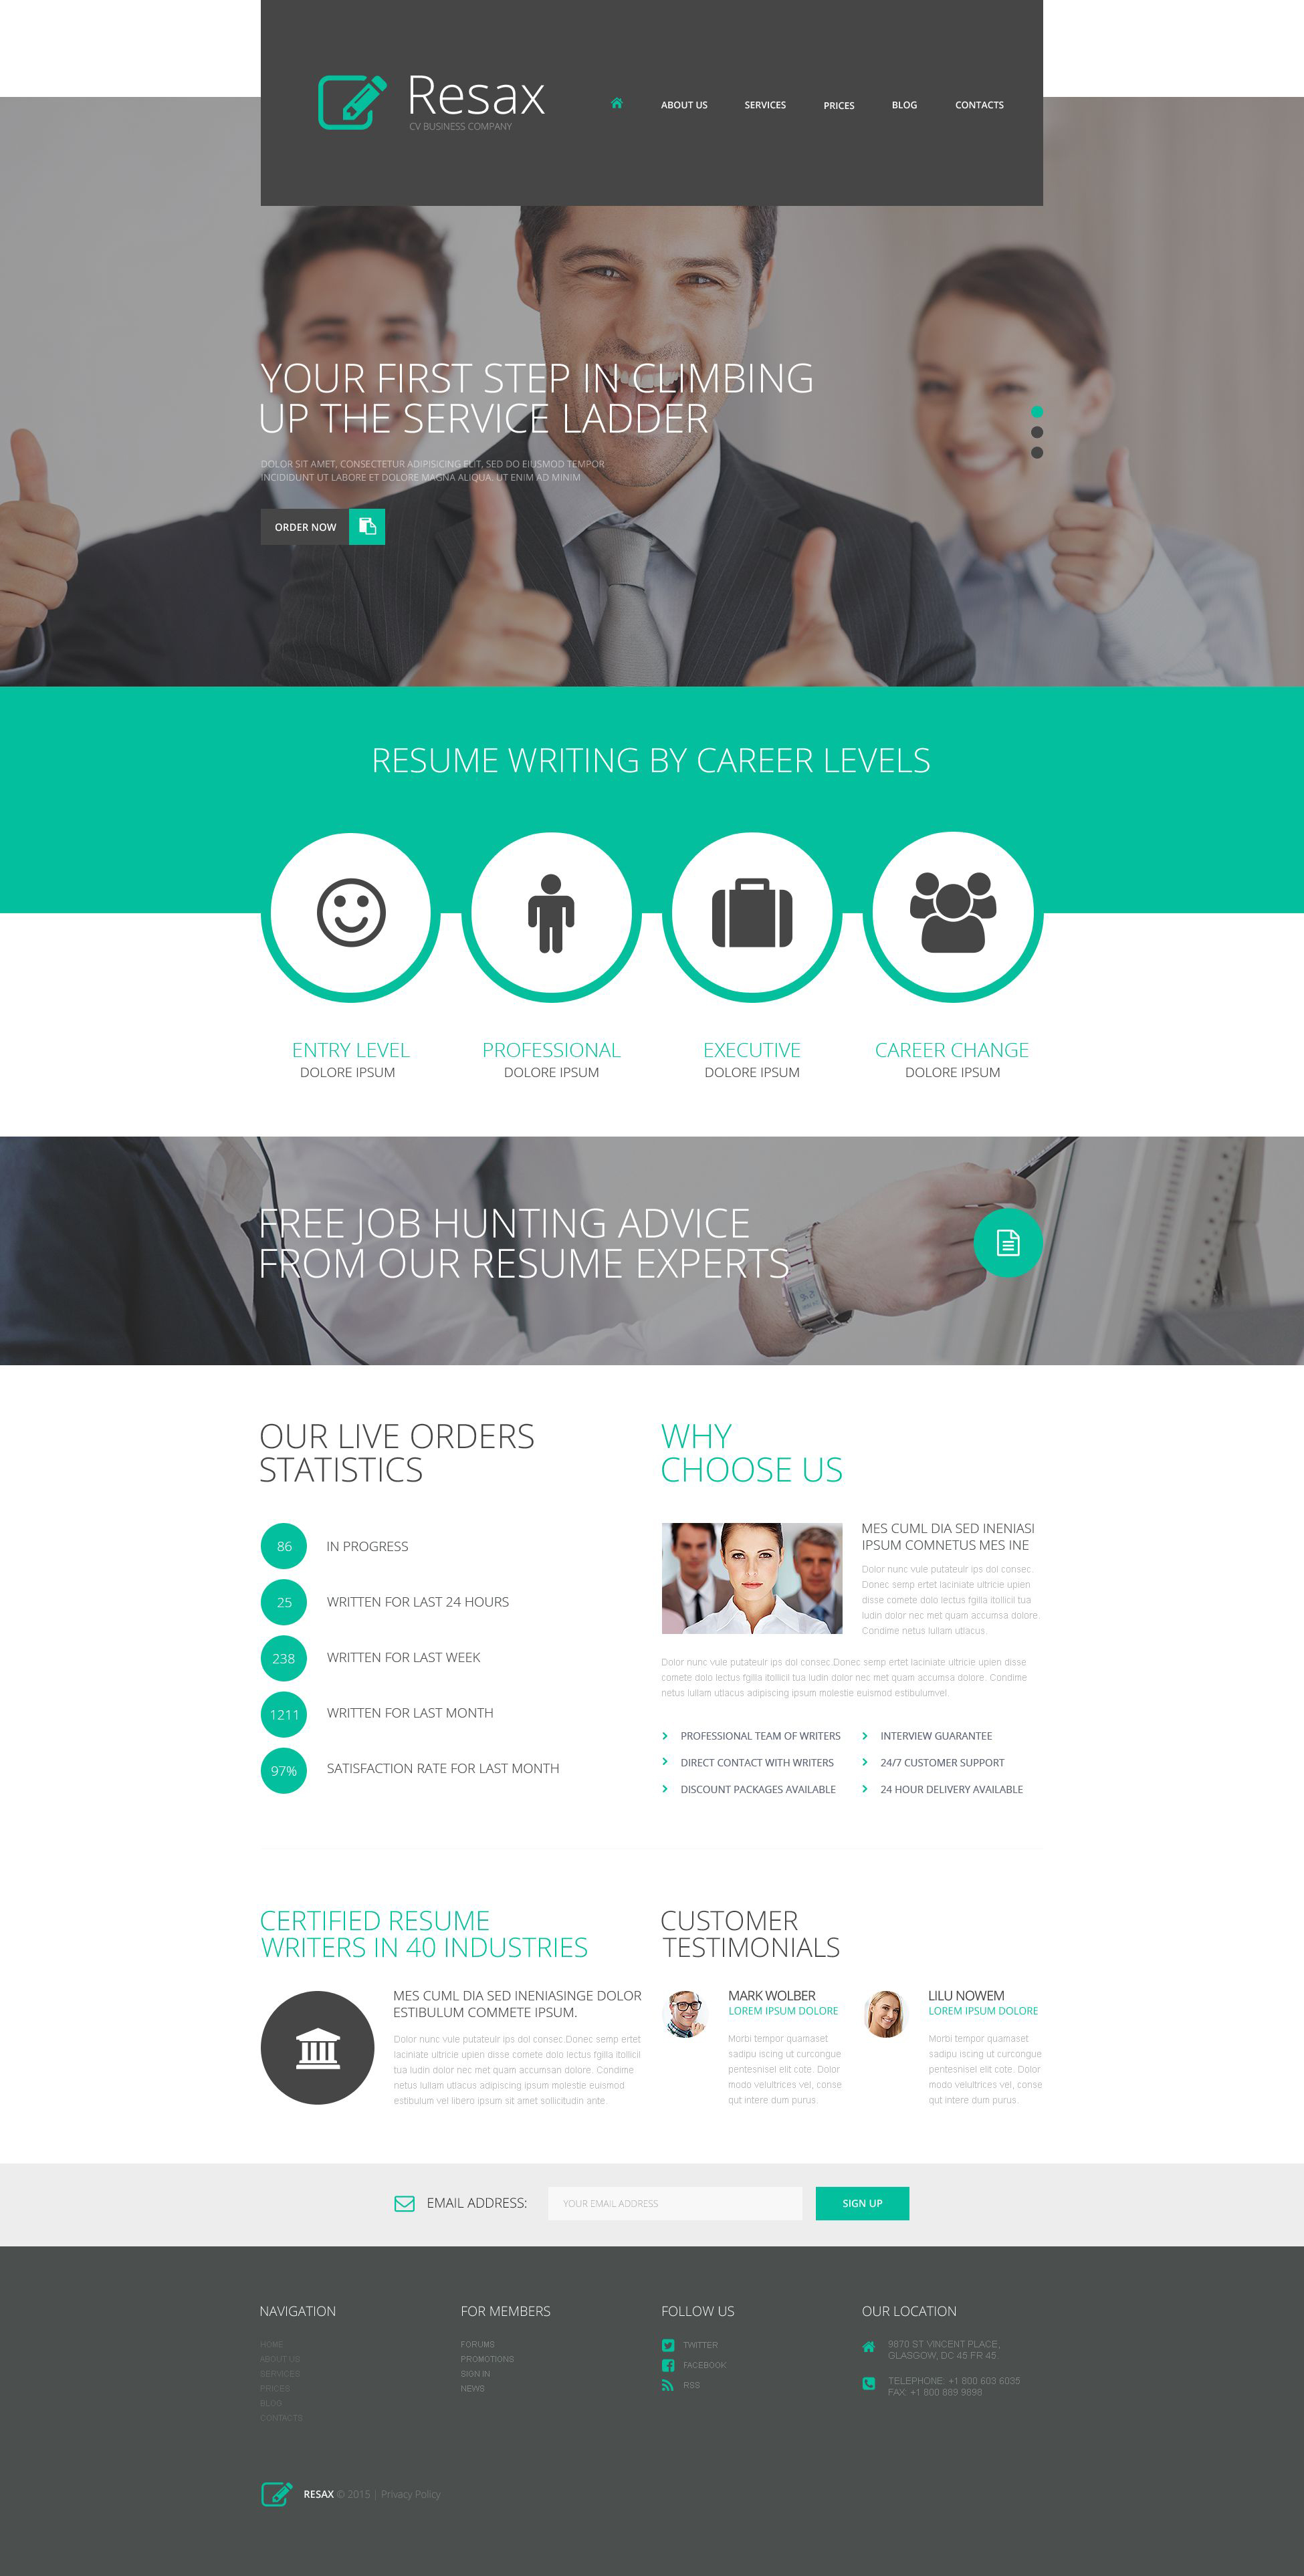 The CV Business Success Company WordPress Design 53443, one of the best WordPress themes of its kind (business, most popular), also known as CV business success company WordPress template, enterprise solution WordPress template, business WordPress template, industry WordPress template, technical WordPress template, clients WordPress template, customer support WordPress template, automate WordPress template, flow WordPress template, services WordPress template, plug-in WordPress template, flex WordPress template, profile WordPress template, principles WordPress template, web products WordPress template, technology system and related with CV business success company, enterprise solution, business, industry, technical, clients, customer support, automate, flow, services, plug-in, flex, profile, principles, web products, technology system, etc.